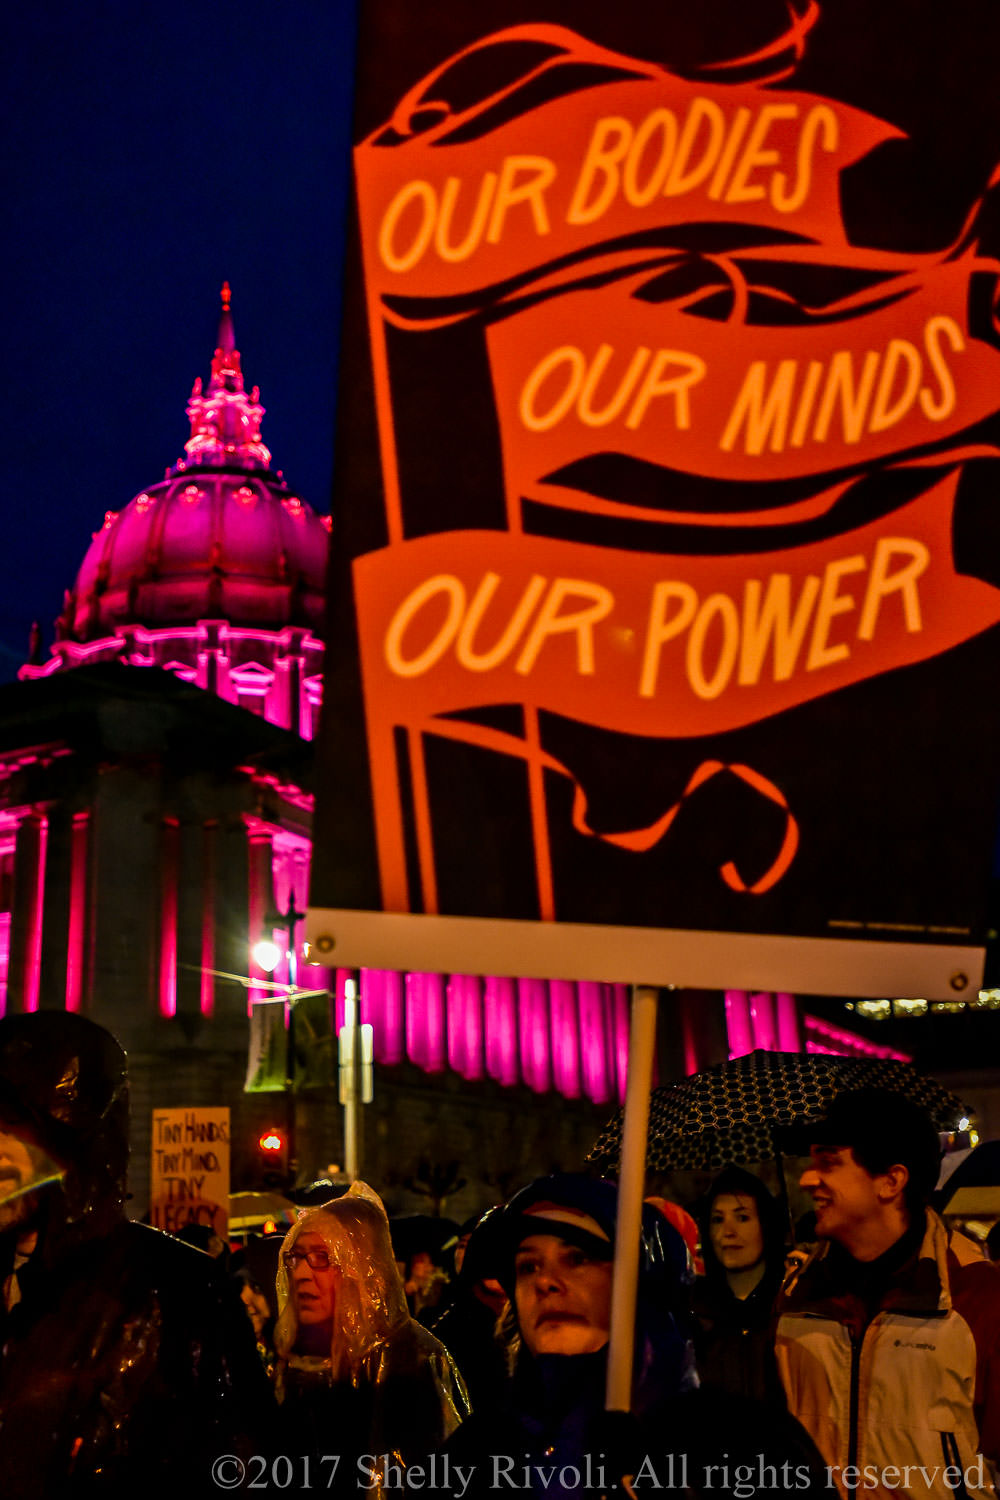 """Women's March sign, """"Our bodies. Our minds. Our power."""""""